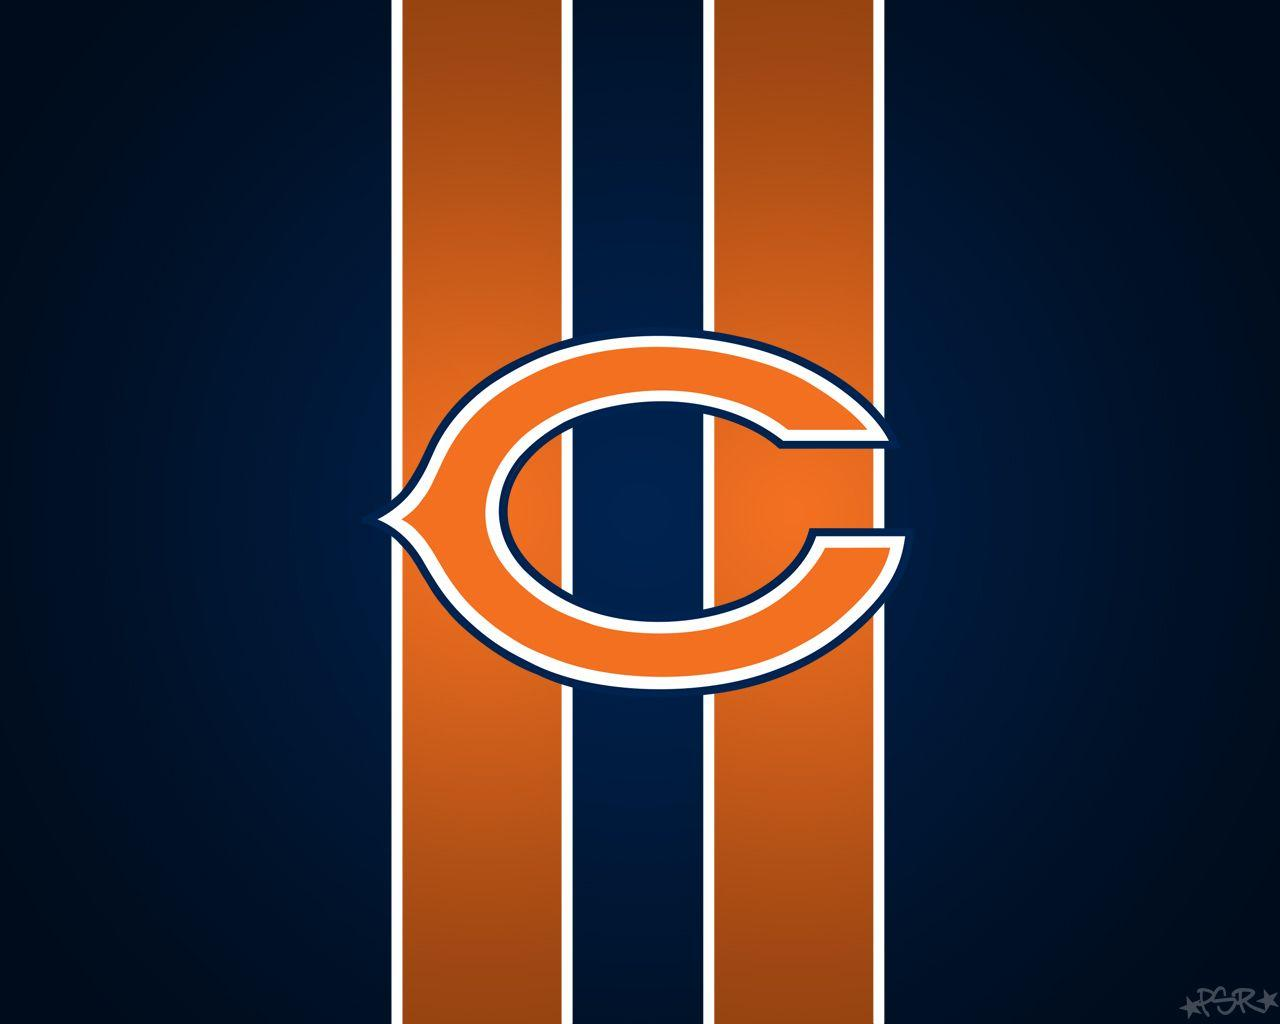 1280x1024 - Chicago Bears Wallpapers 12